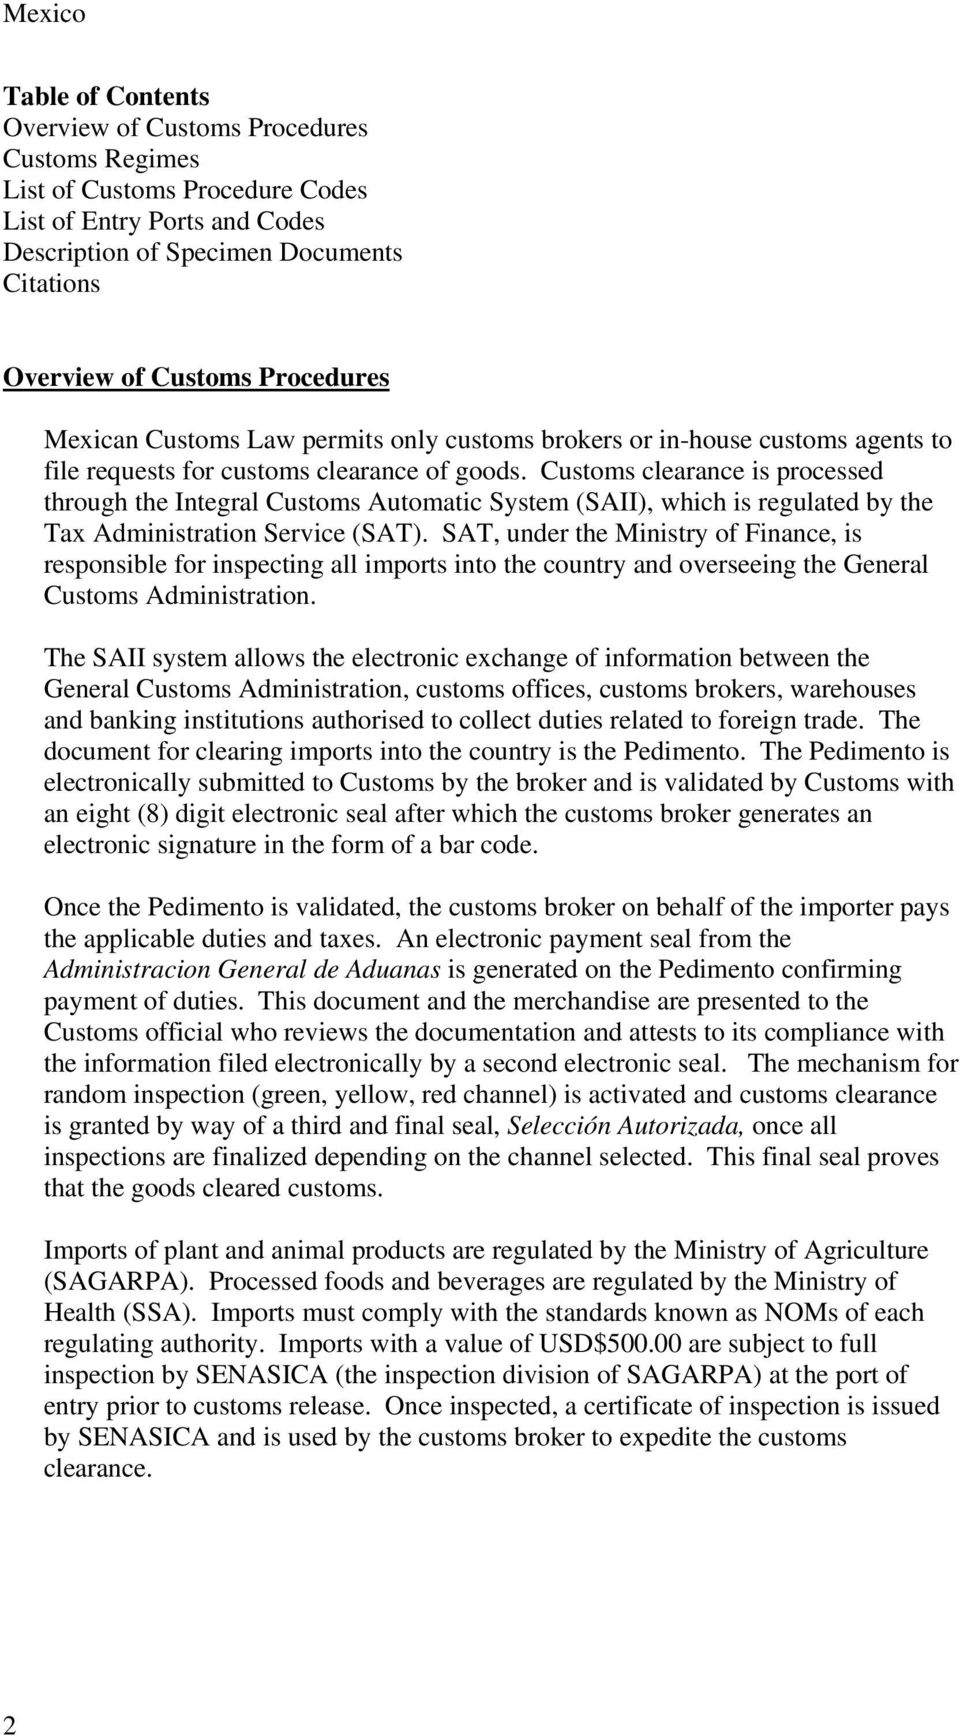 Country Dossier  Mexico - PDF